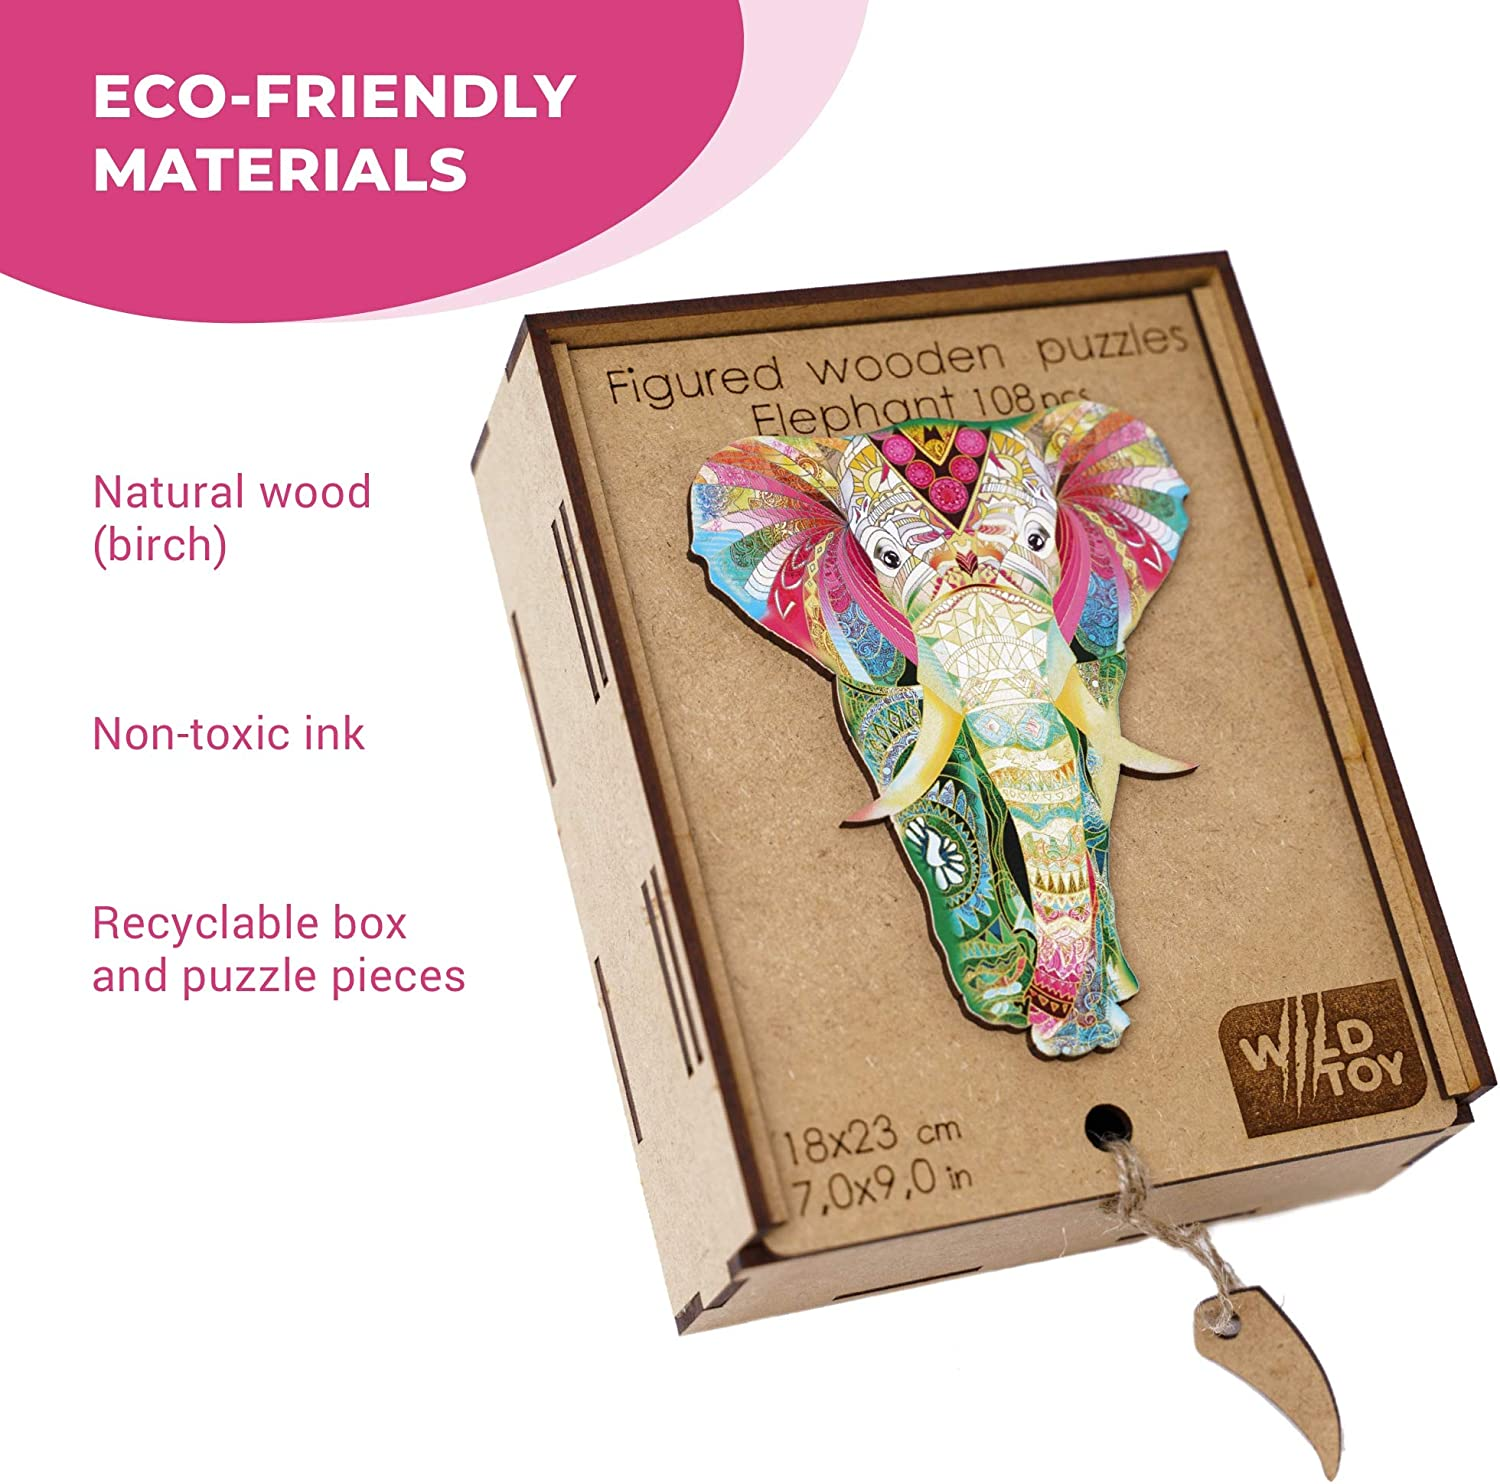 Wooden Puzzles for Adults Kids Families - Large 108 Unique Shape Pieces 9.0 x 7.0 in Elephant of India Wood Jigsaw Animal Shaped Puzzles 23x18cm Animal Crossing Puzzle Creative Craft Gift